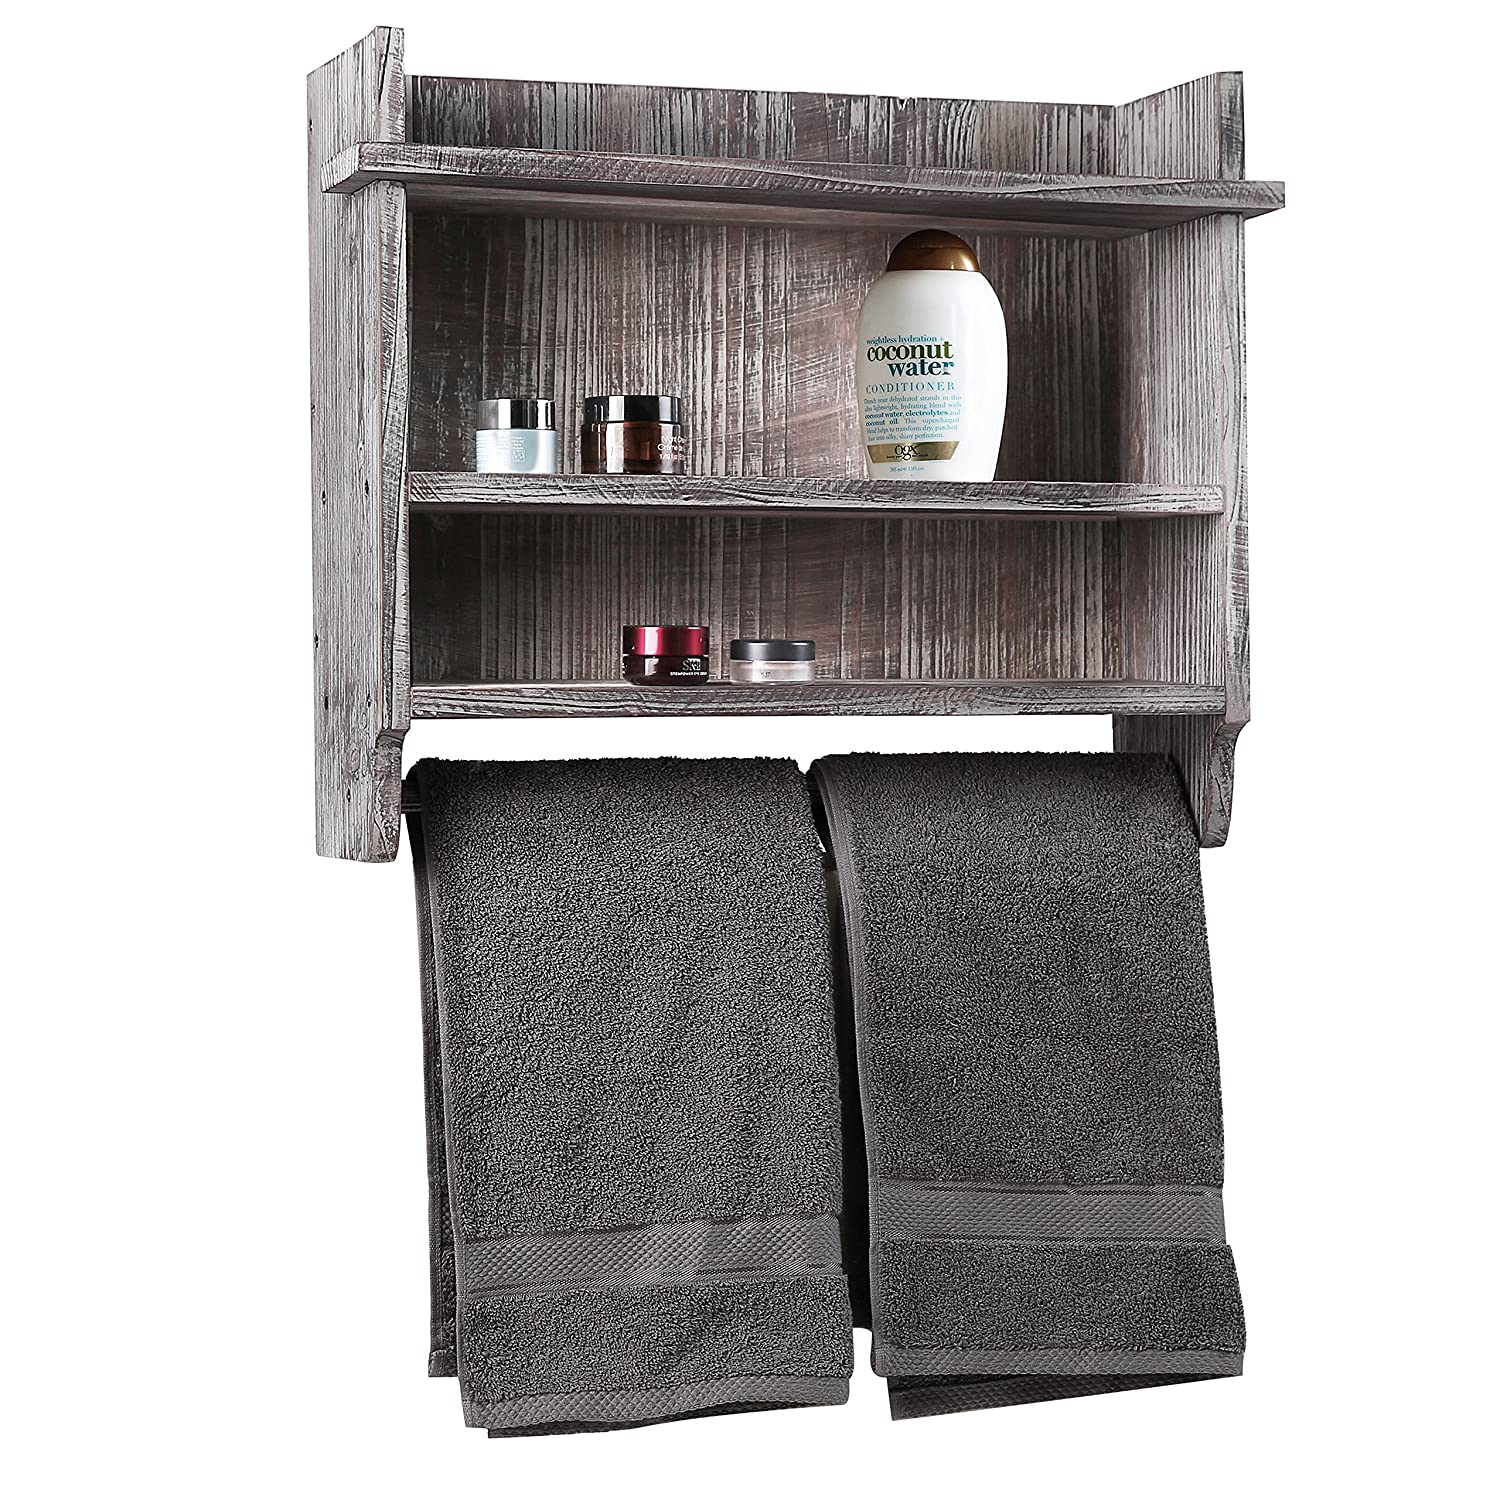 Bathroom Organizer Rack Hanging Towel Bar 3 Storage